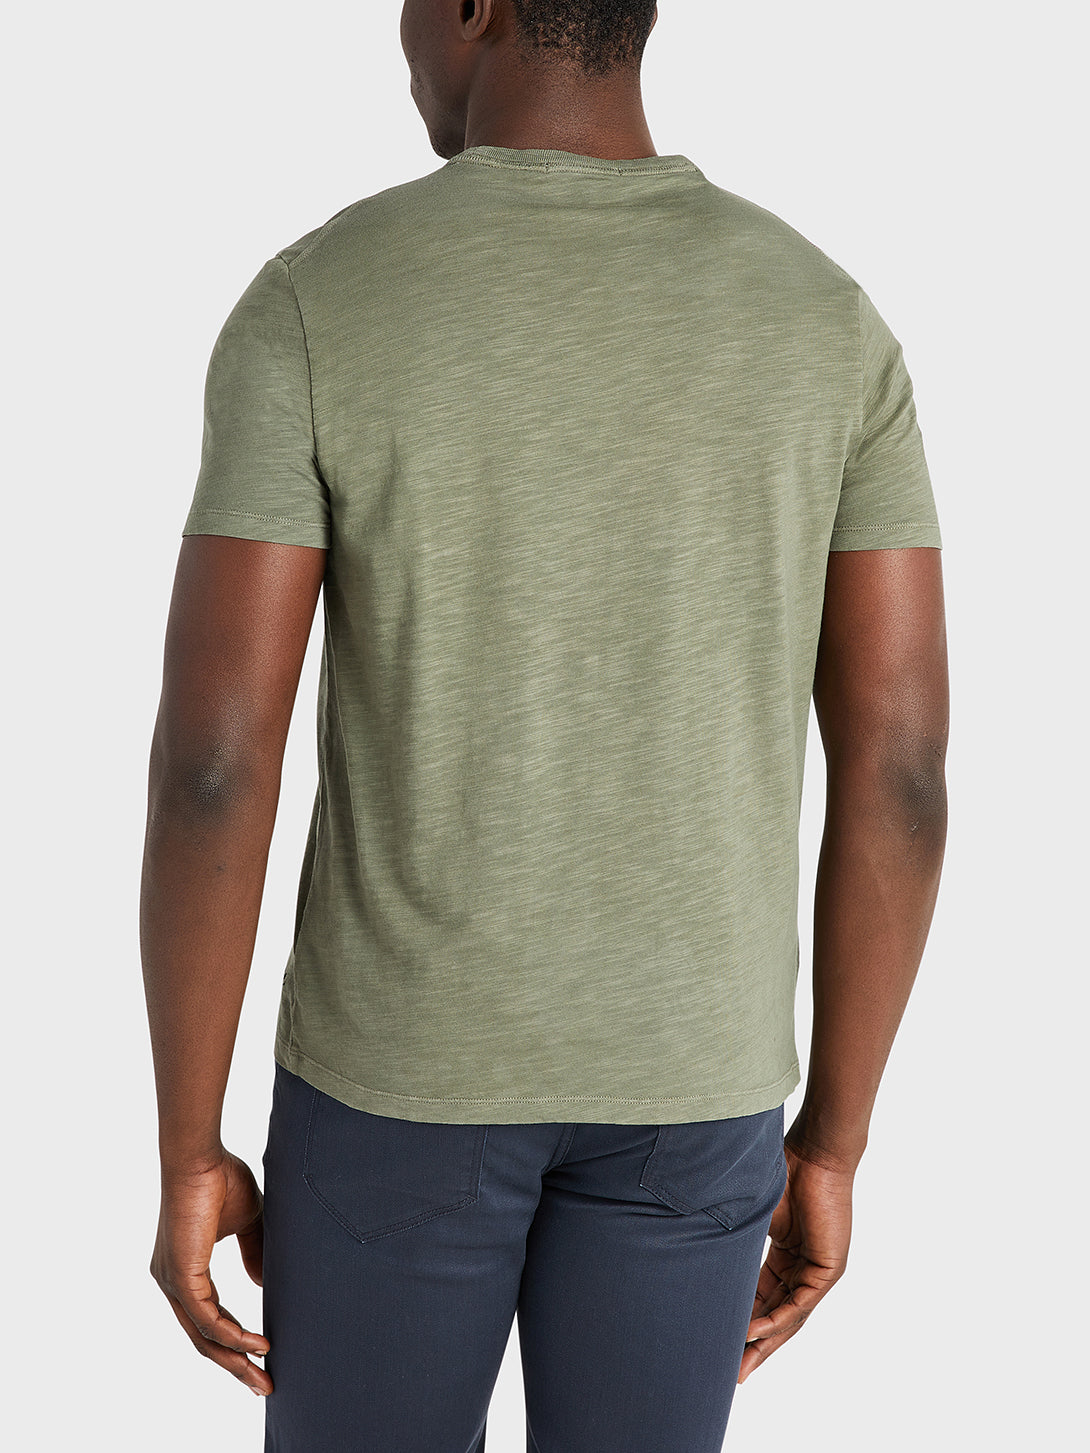 black friday deals ONS Clothing Men's tee in OLIVE